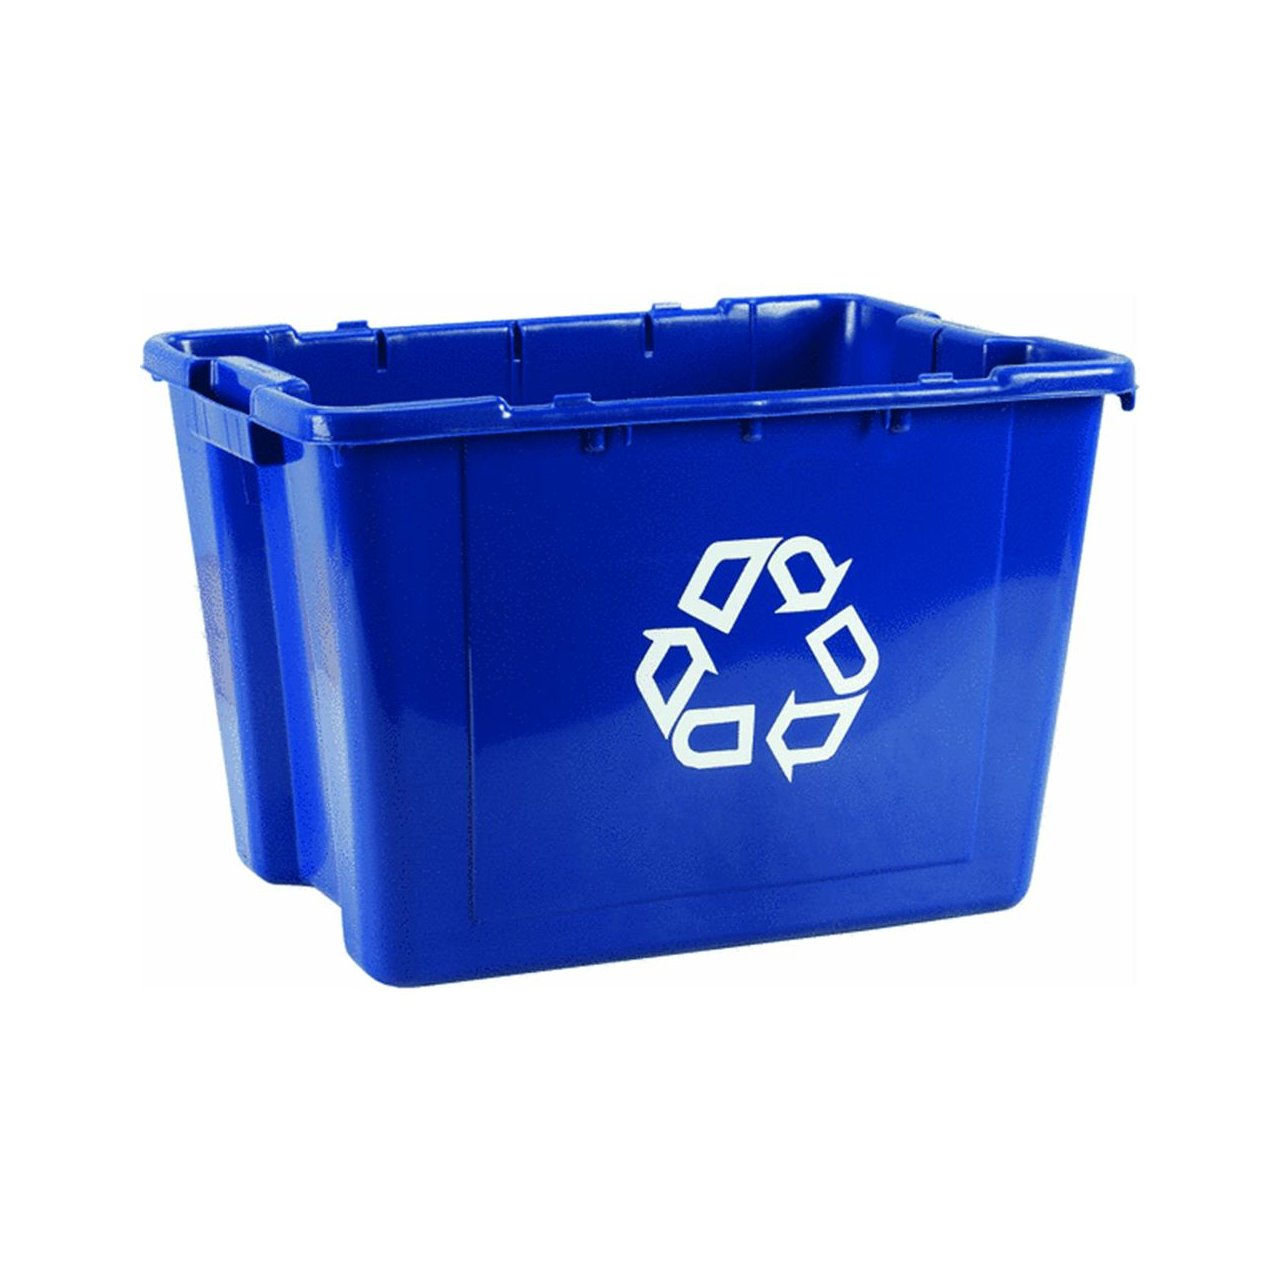 Rubbermaid(R) Computer Paper CollectionWe Recycle Container, 12 1/2 Gallons, 13 1/2-Inch H by 20-Inch W by 15-Inch D, Blue 5712-06BLUE